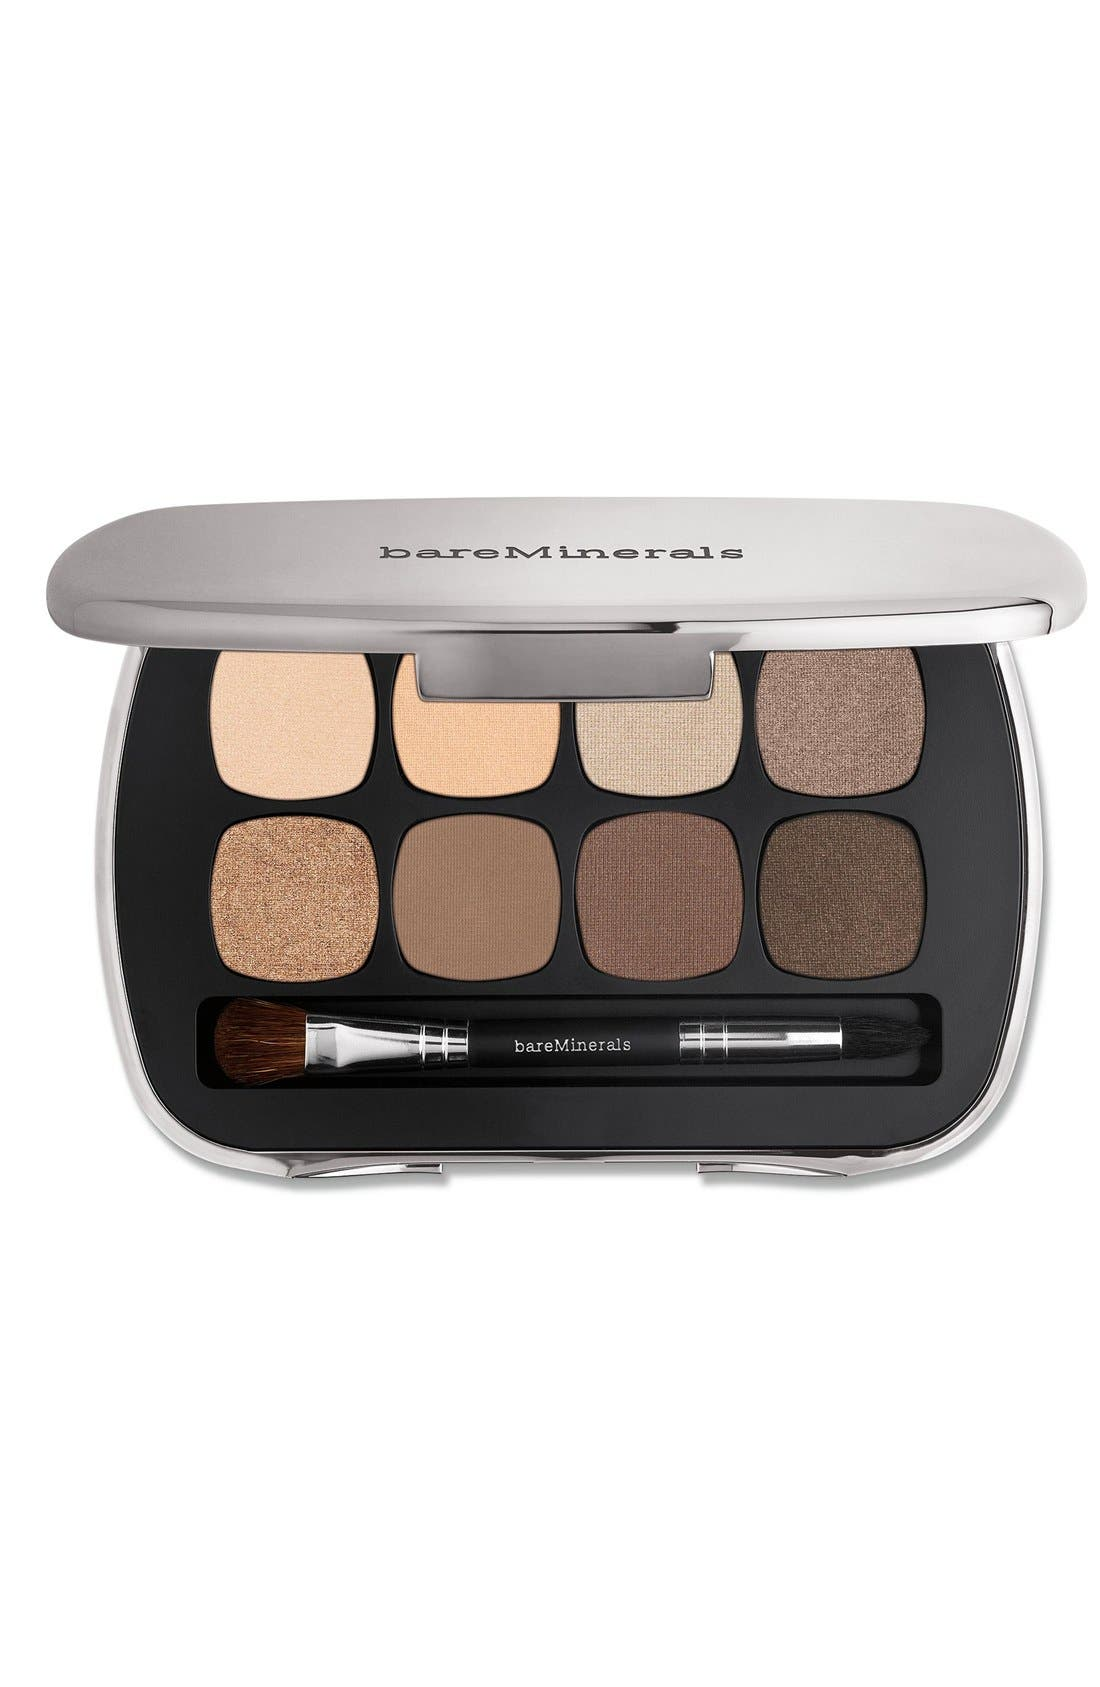 READY 8.0 The Bare Neutrals Eyeshadow Palette,                         Main,                         color, NO COLOR